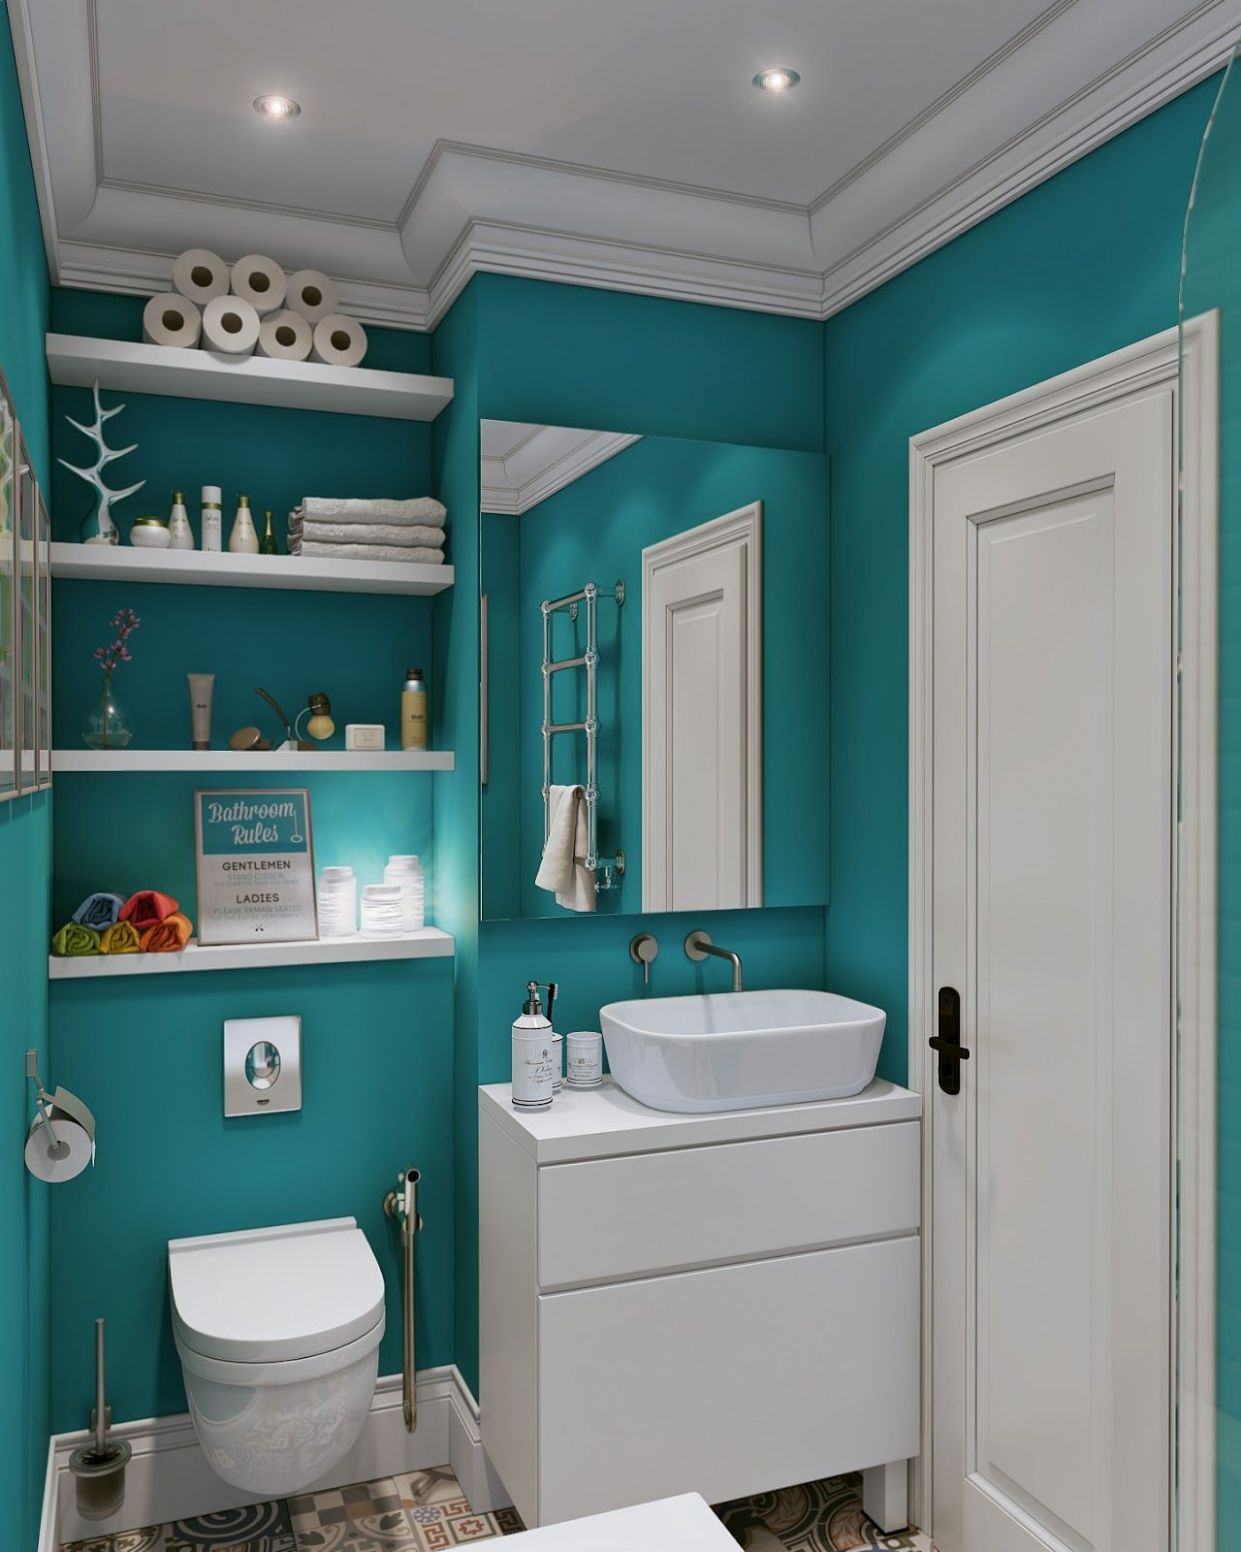 The bathroom is beautiful in a bright and boisterous teal ...